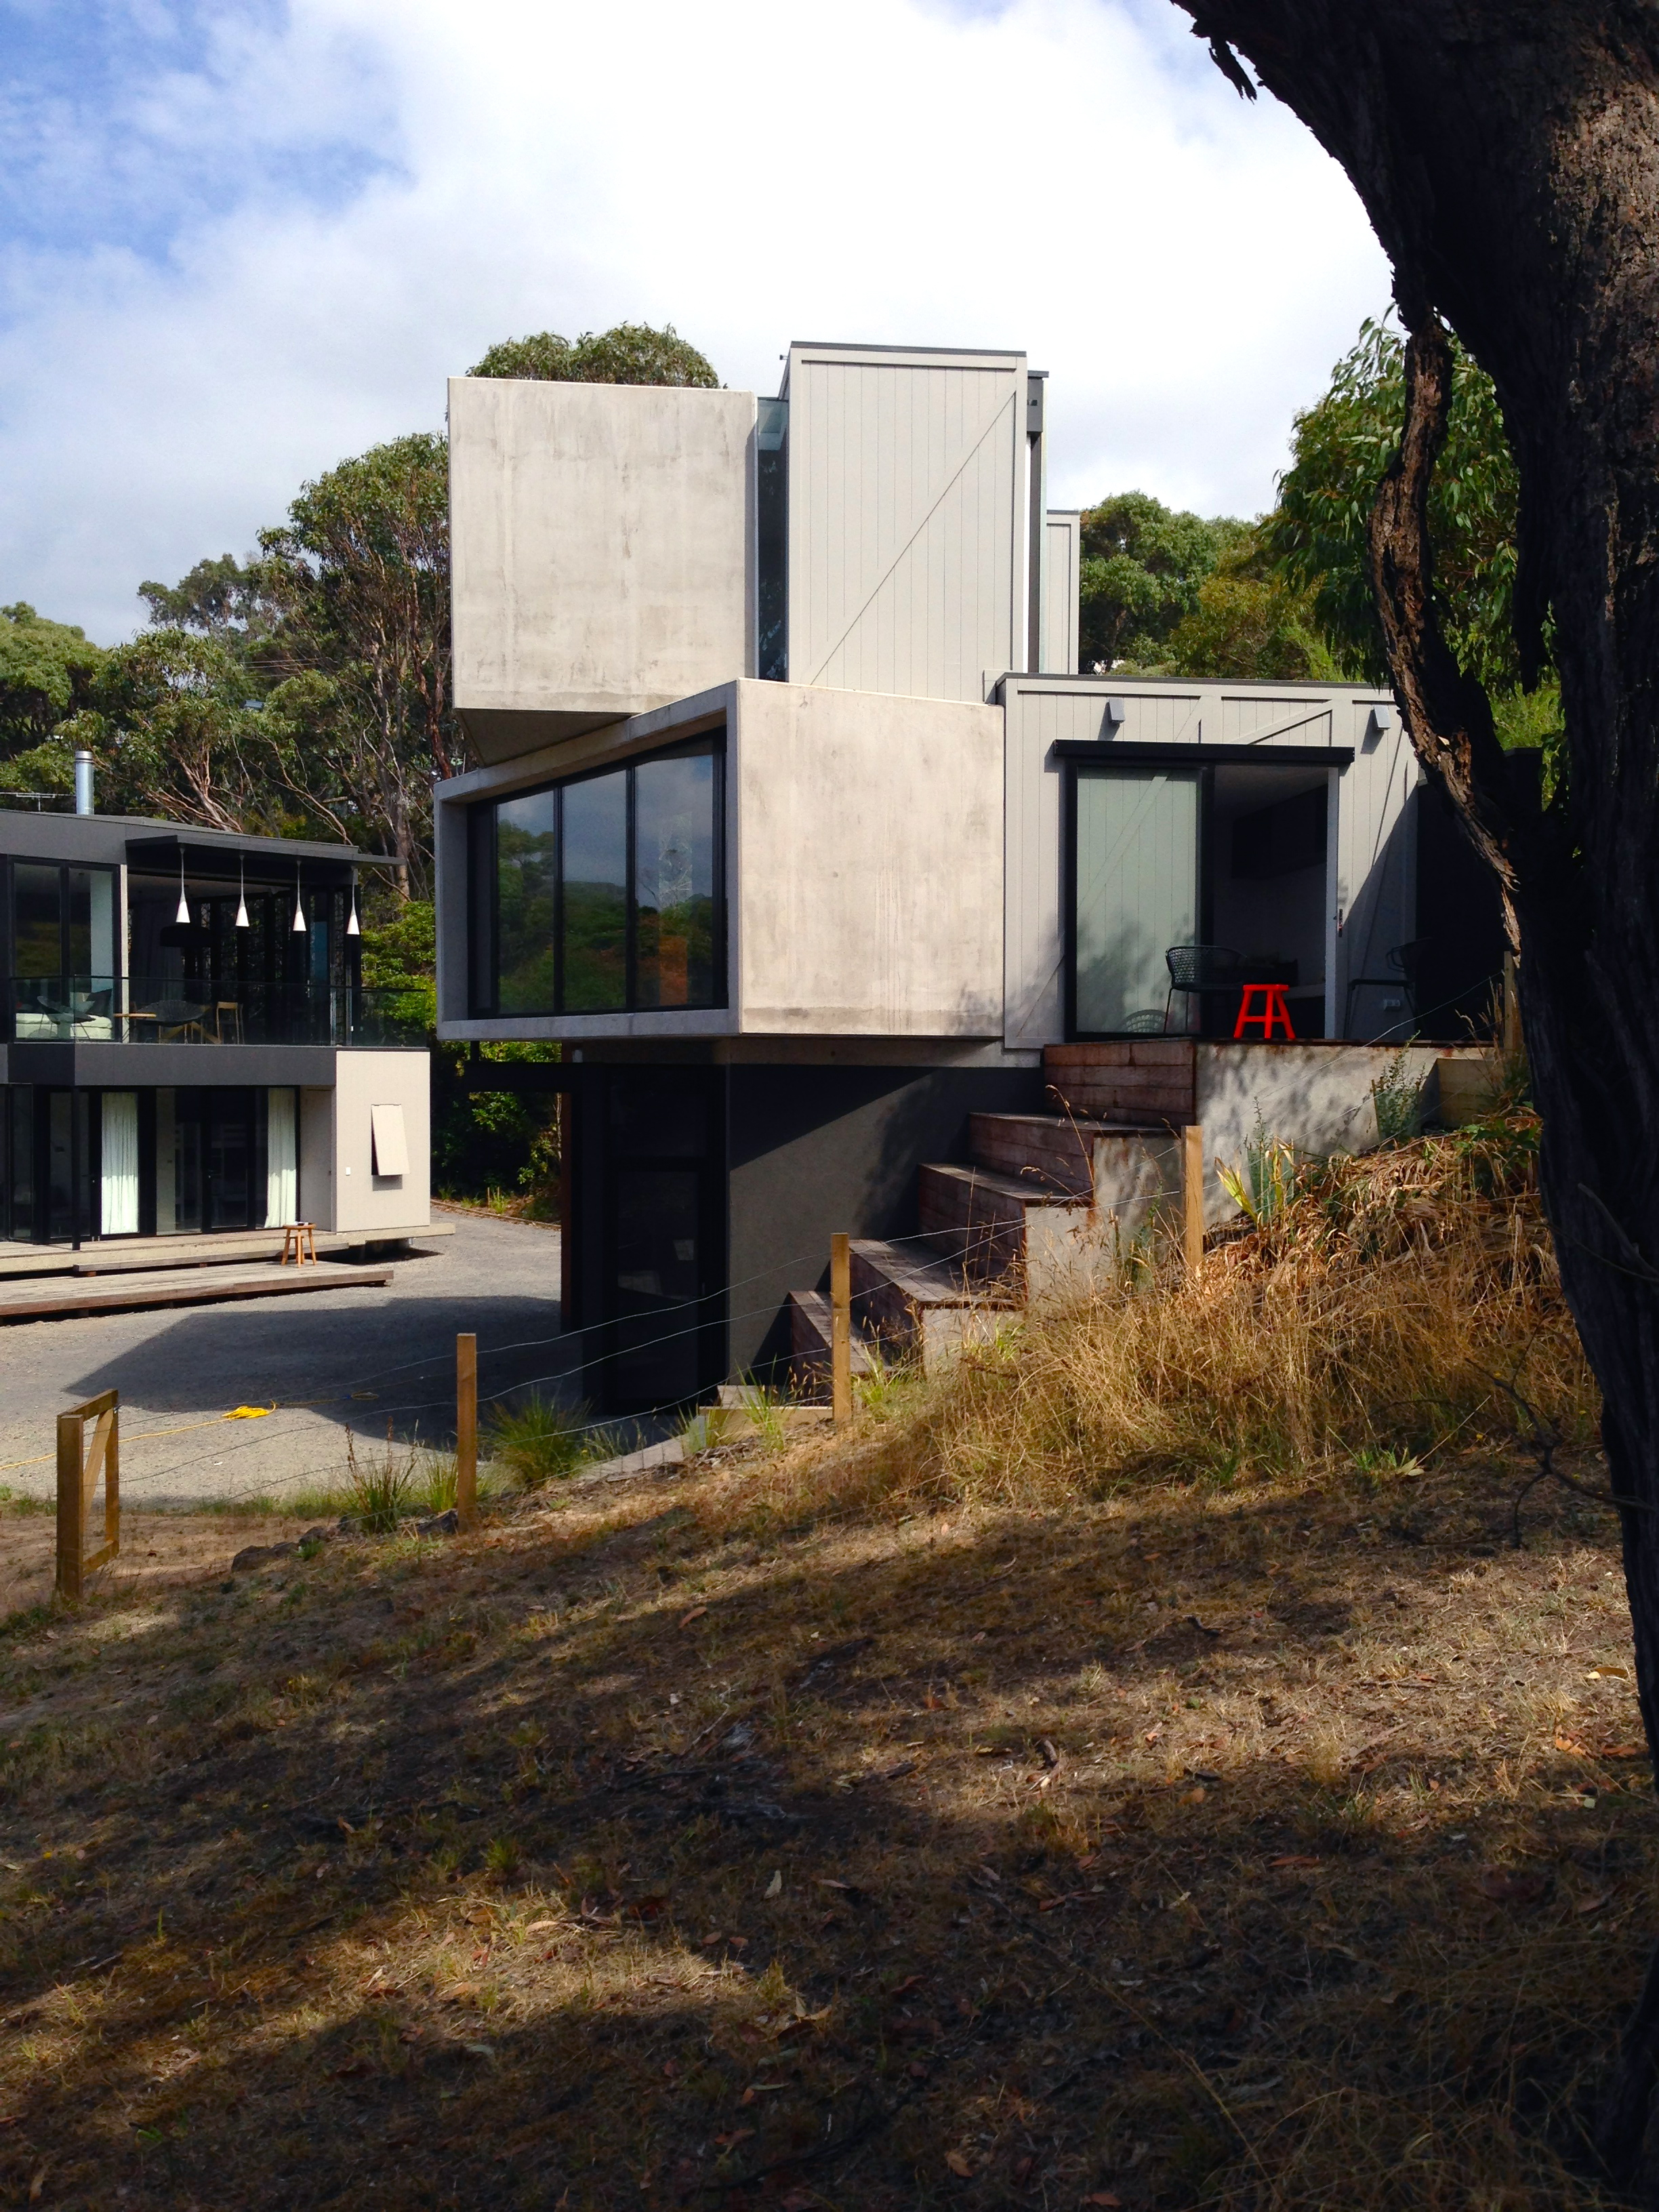 The POD de Whiting Architects